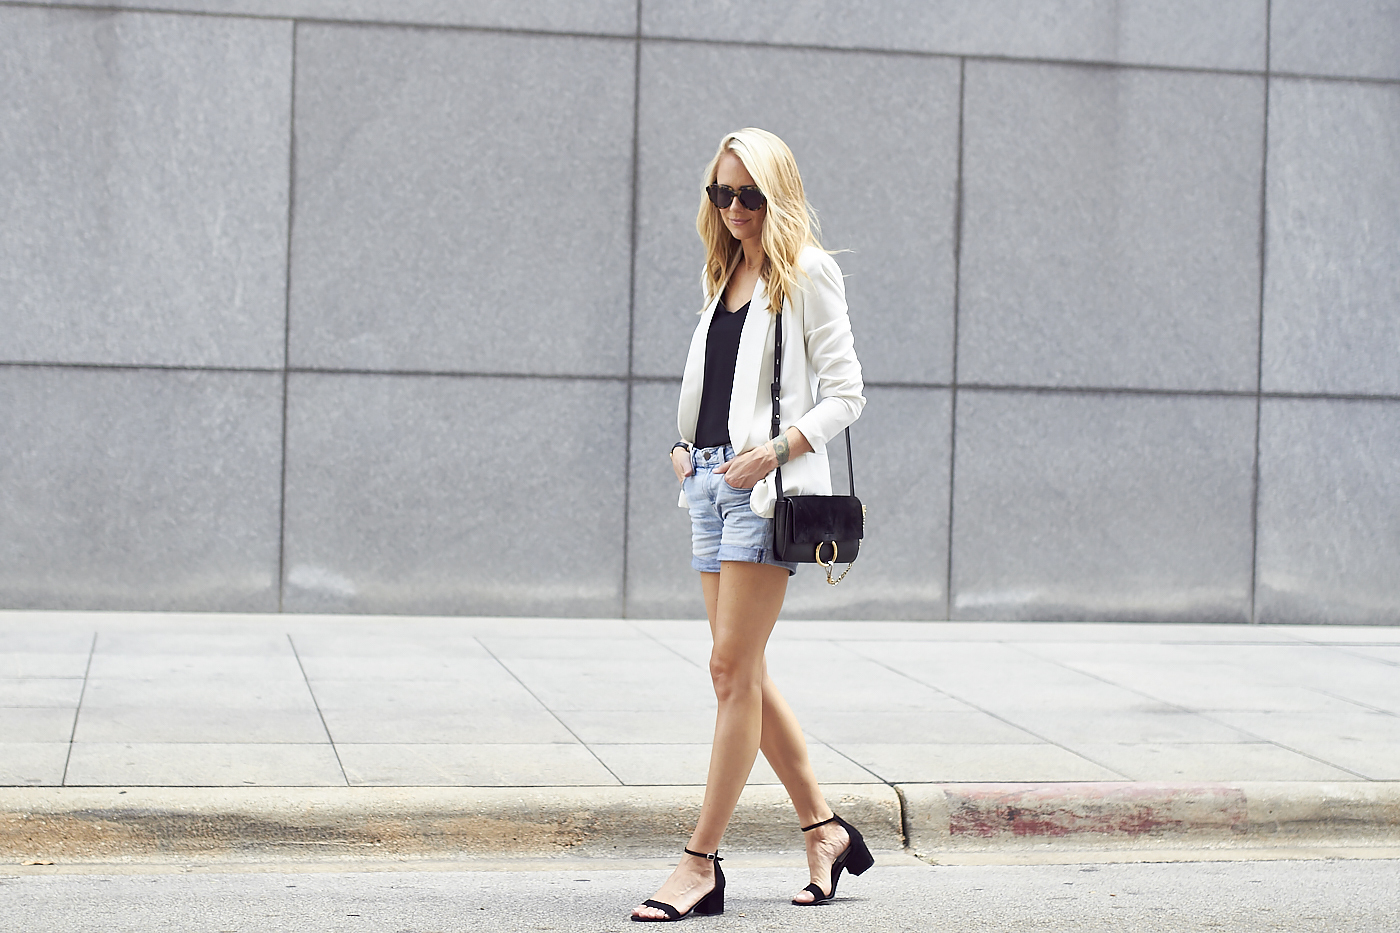 The model in White blazer with denim shorts and handbag for chic summer outfit.